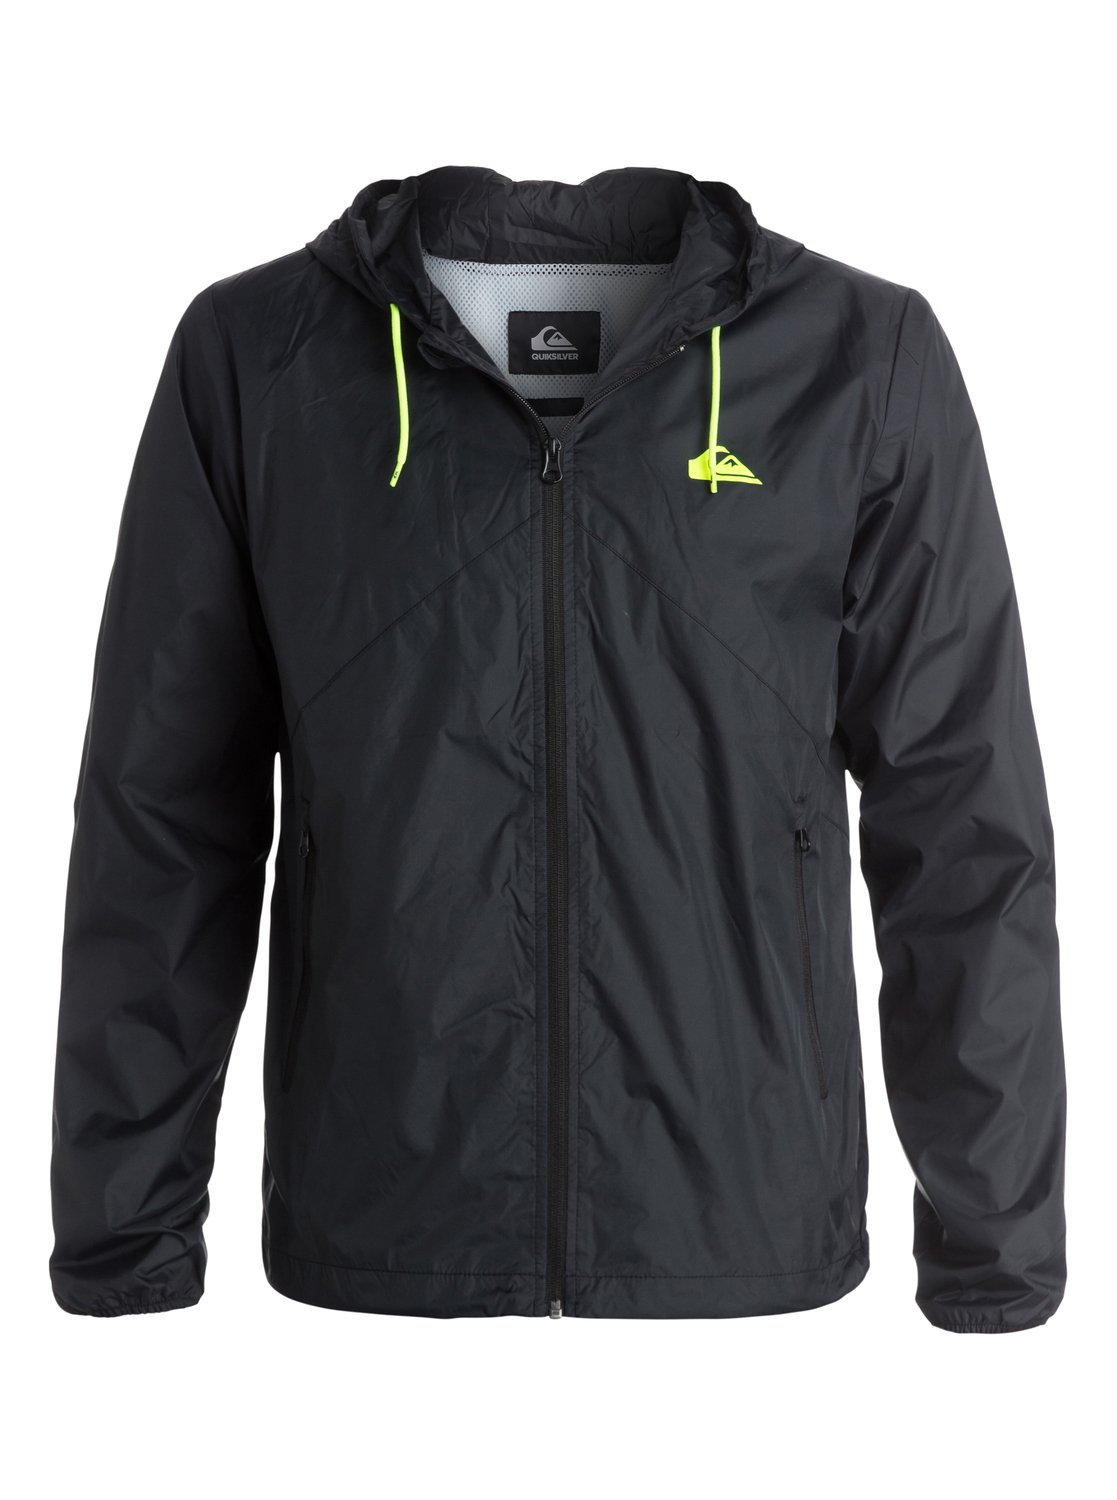 Everyday Jacket от Quiksilver RU